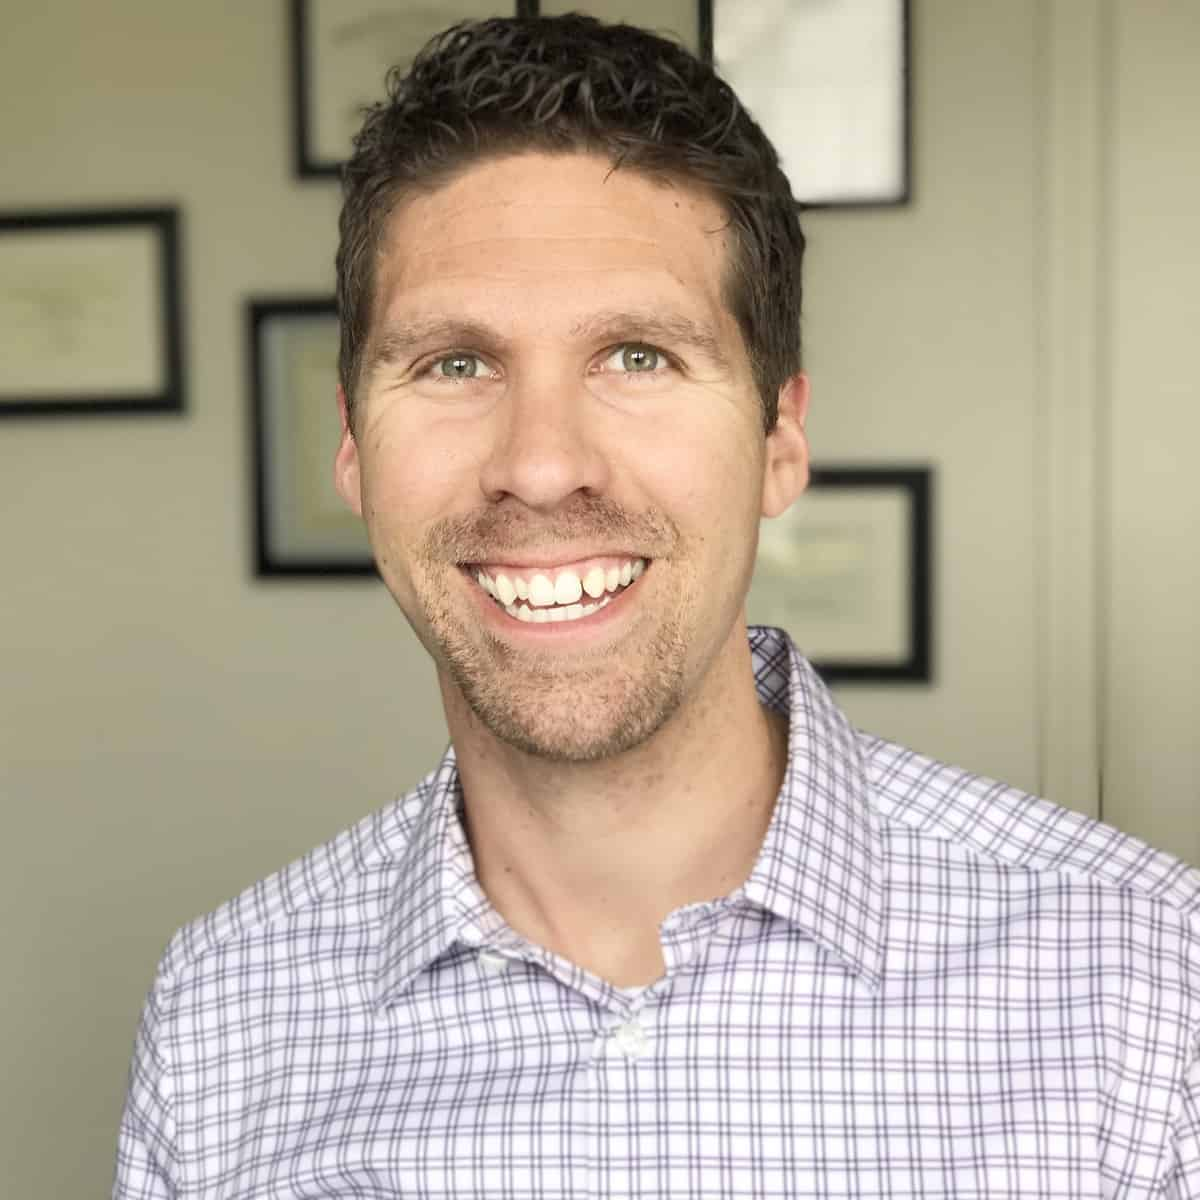 Ed Troxell, Owner of Ed Troxell Creative offering Tech Support and Business Coaching.